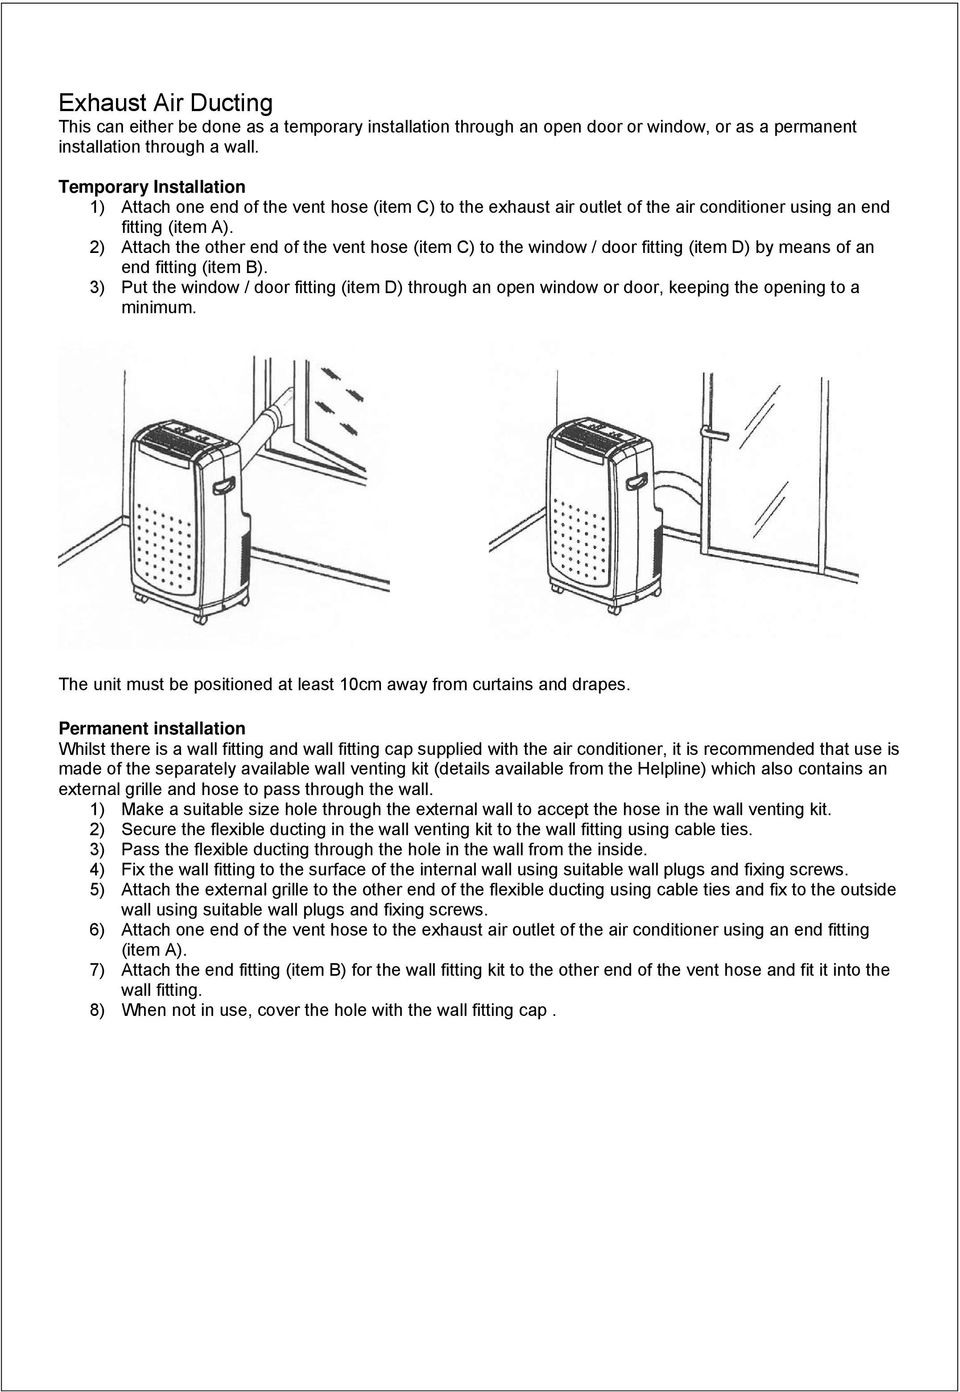 2) Attach the other end of the vent hose (item C) to the window / door fitting (item D) by means of an end fitting (item B).